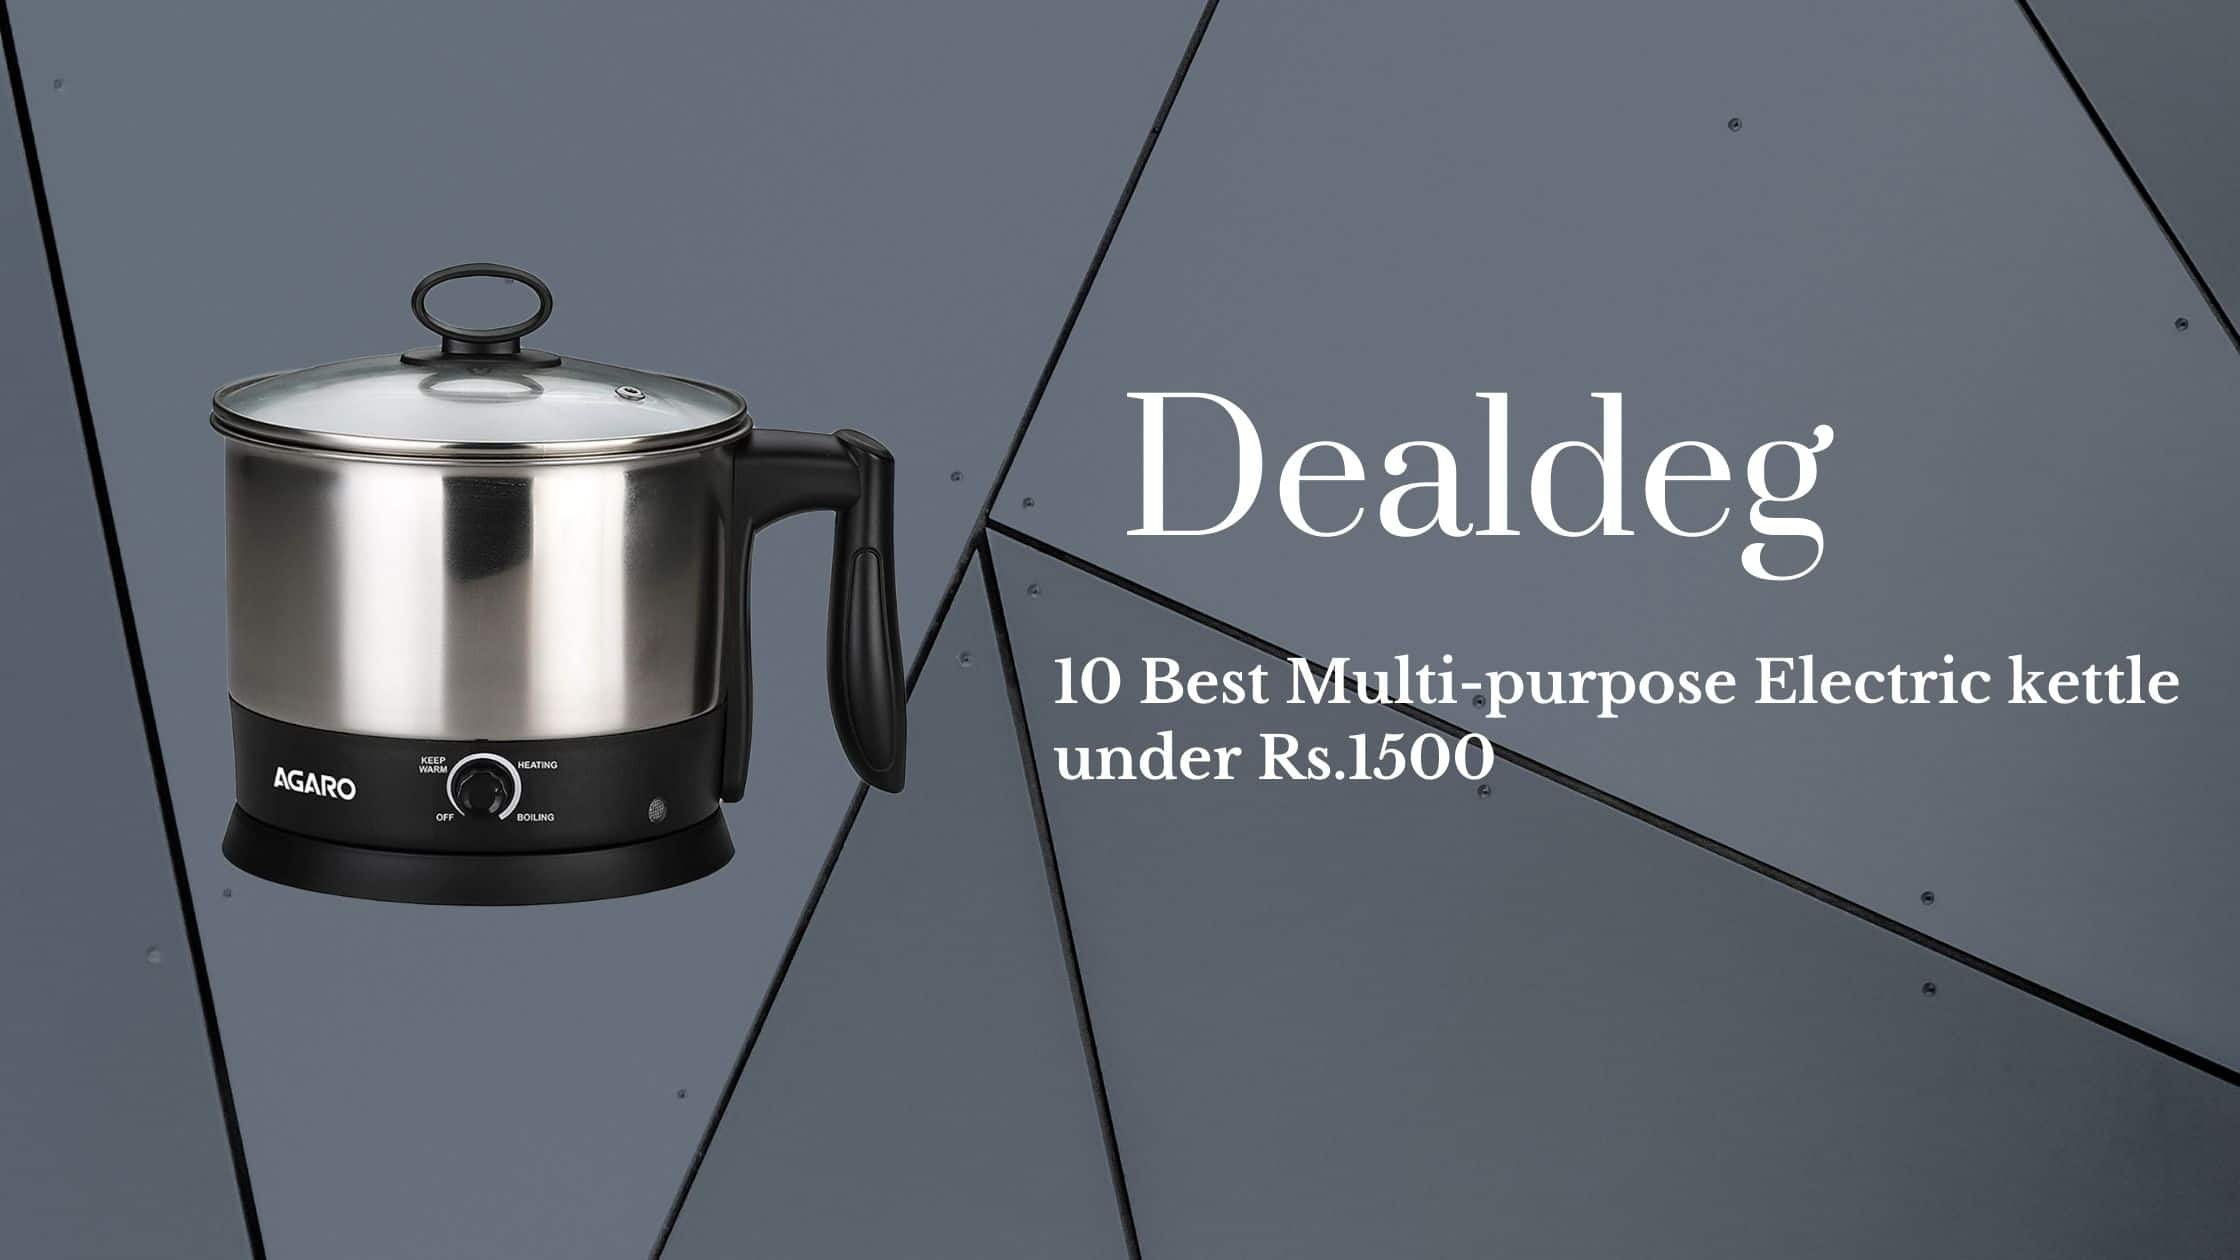 10 Best Multi-purpose Electric kettle under Rs.1500